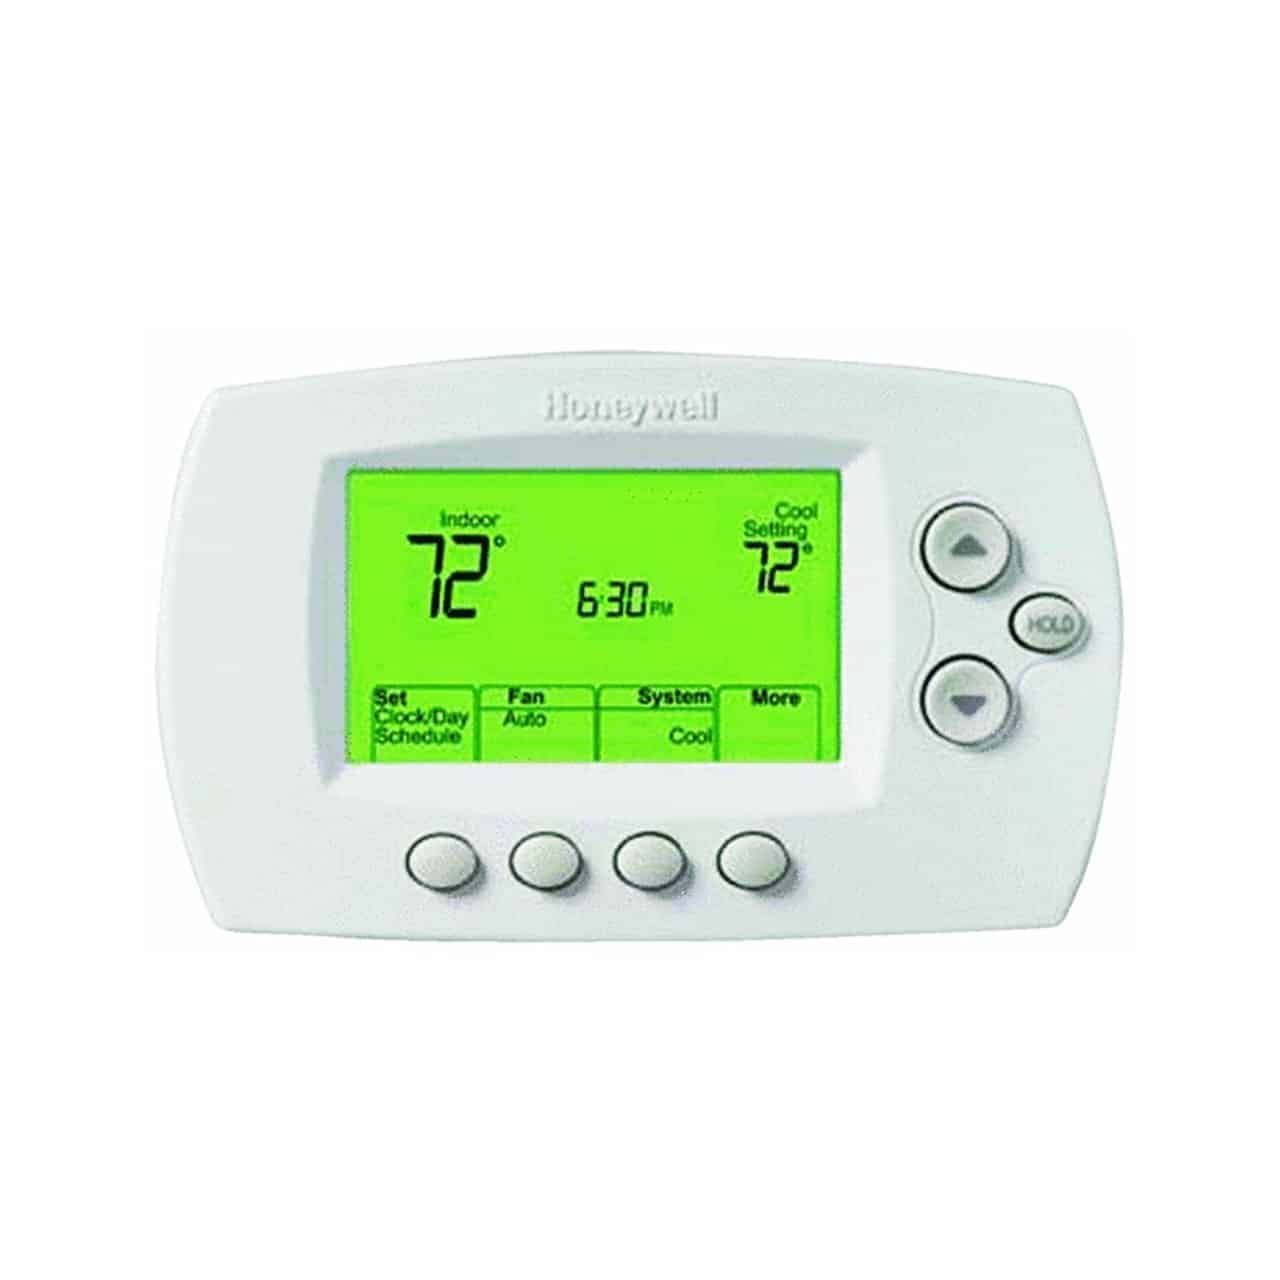 Honeywell RTH6580WF WiFi 7Day Programmable Thermostat Reviews